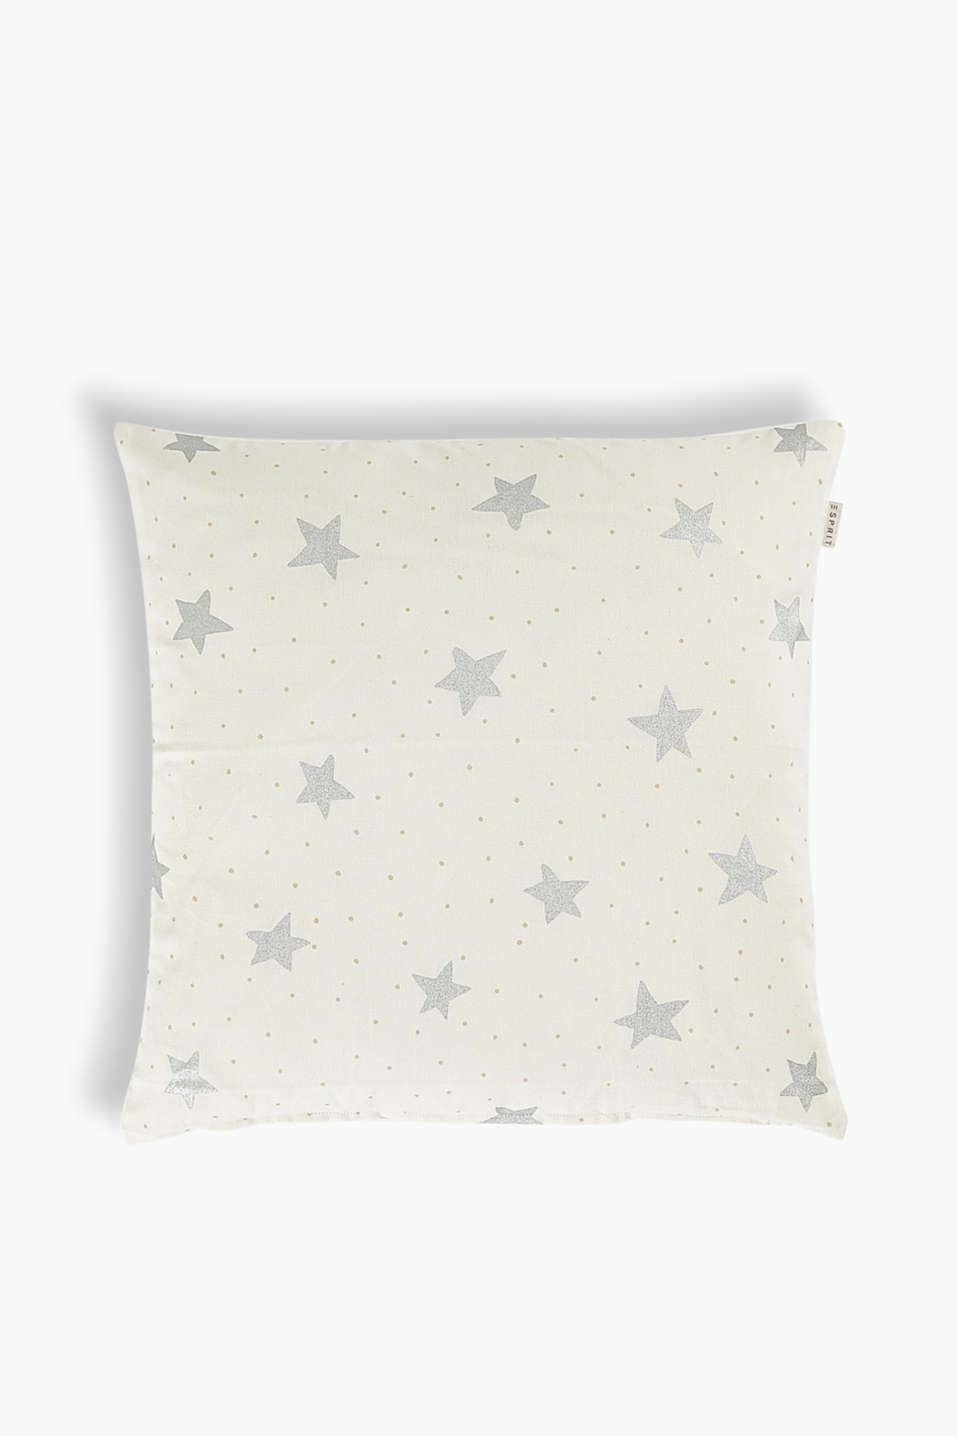 Winter wonderland! Metallic stars and fine polka dots make this cushion cover truly atmospheric and eye-catching